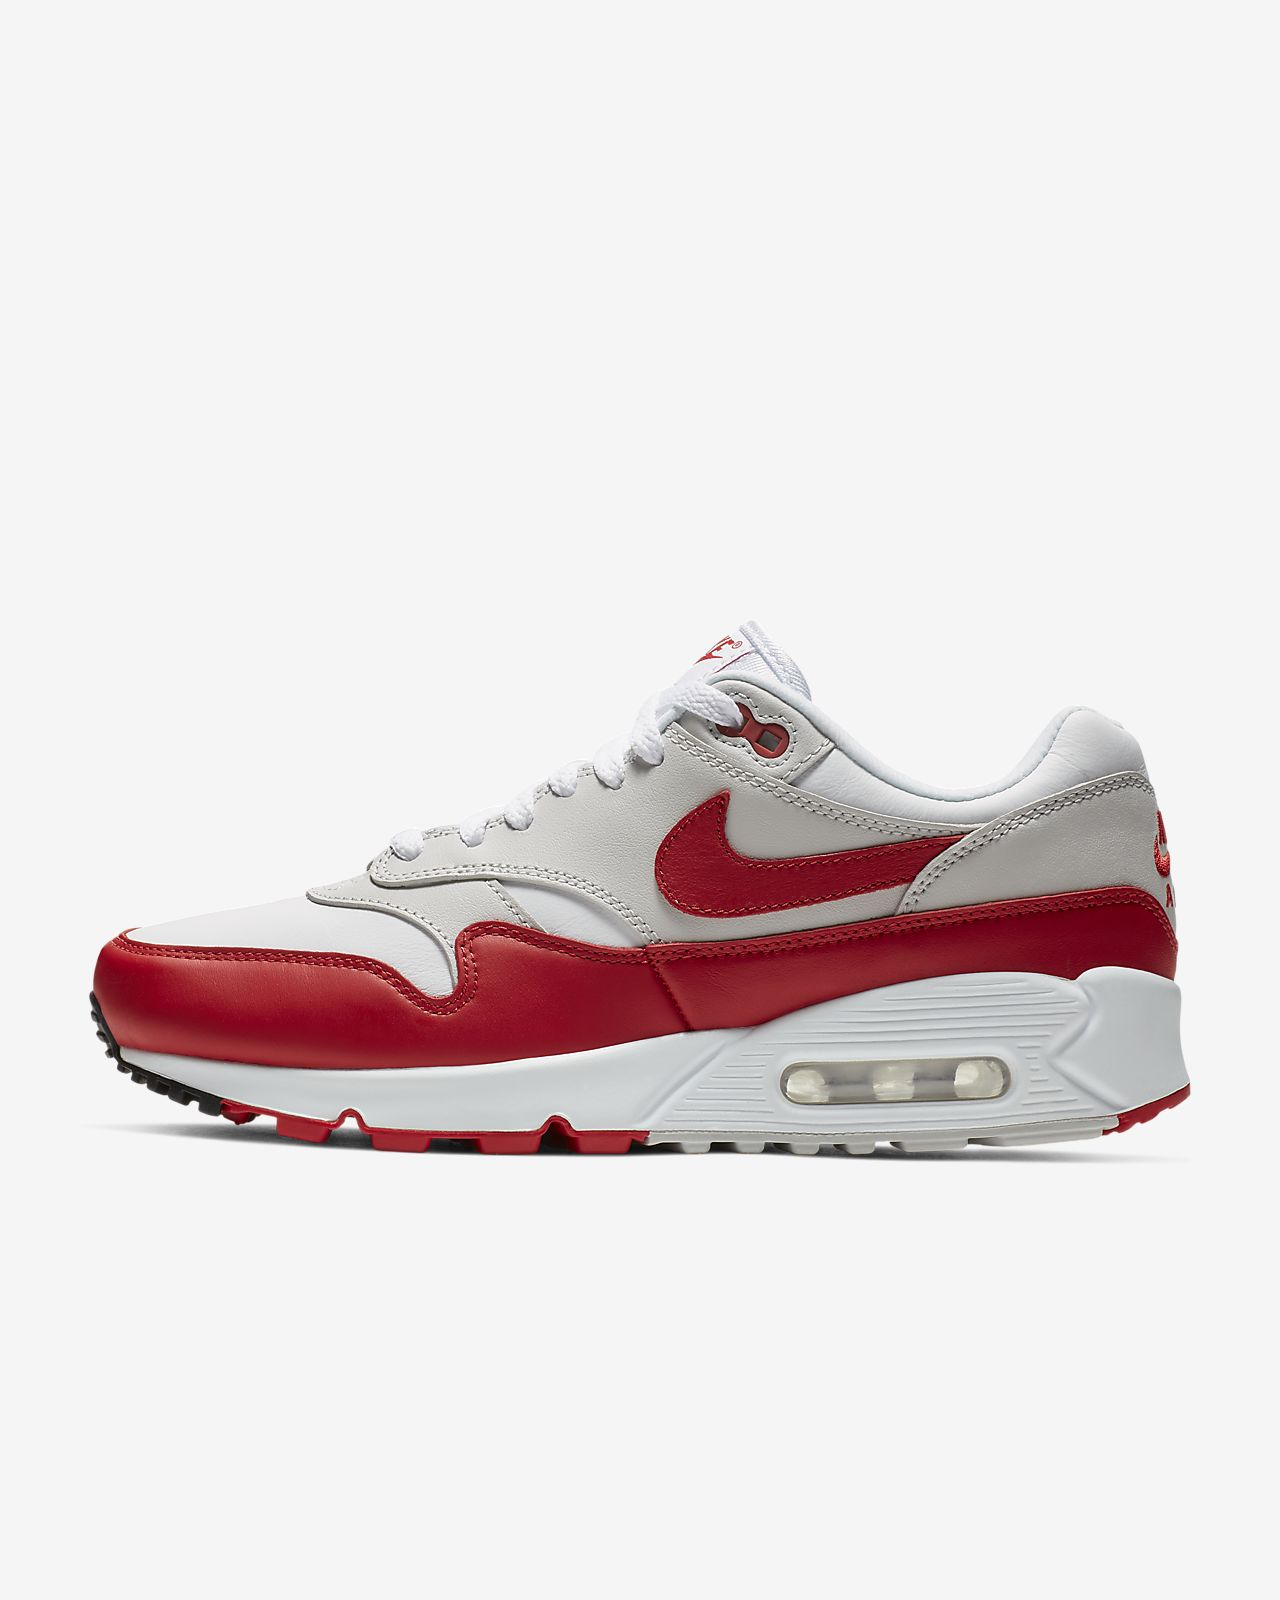 nike air max 90 womens 5.5 leather